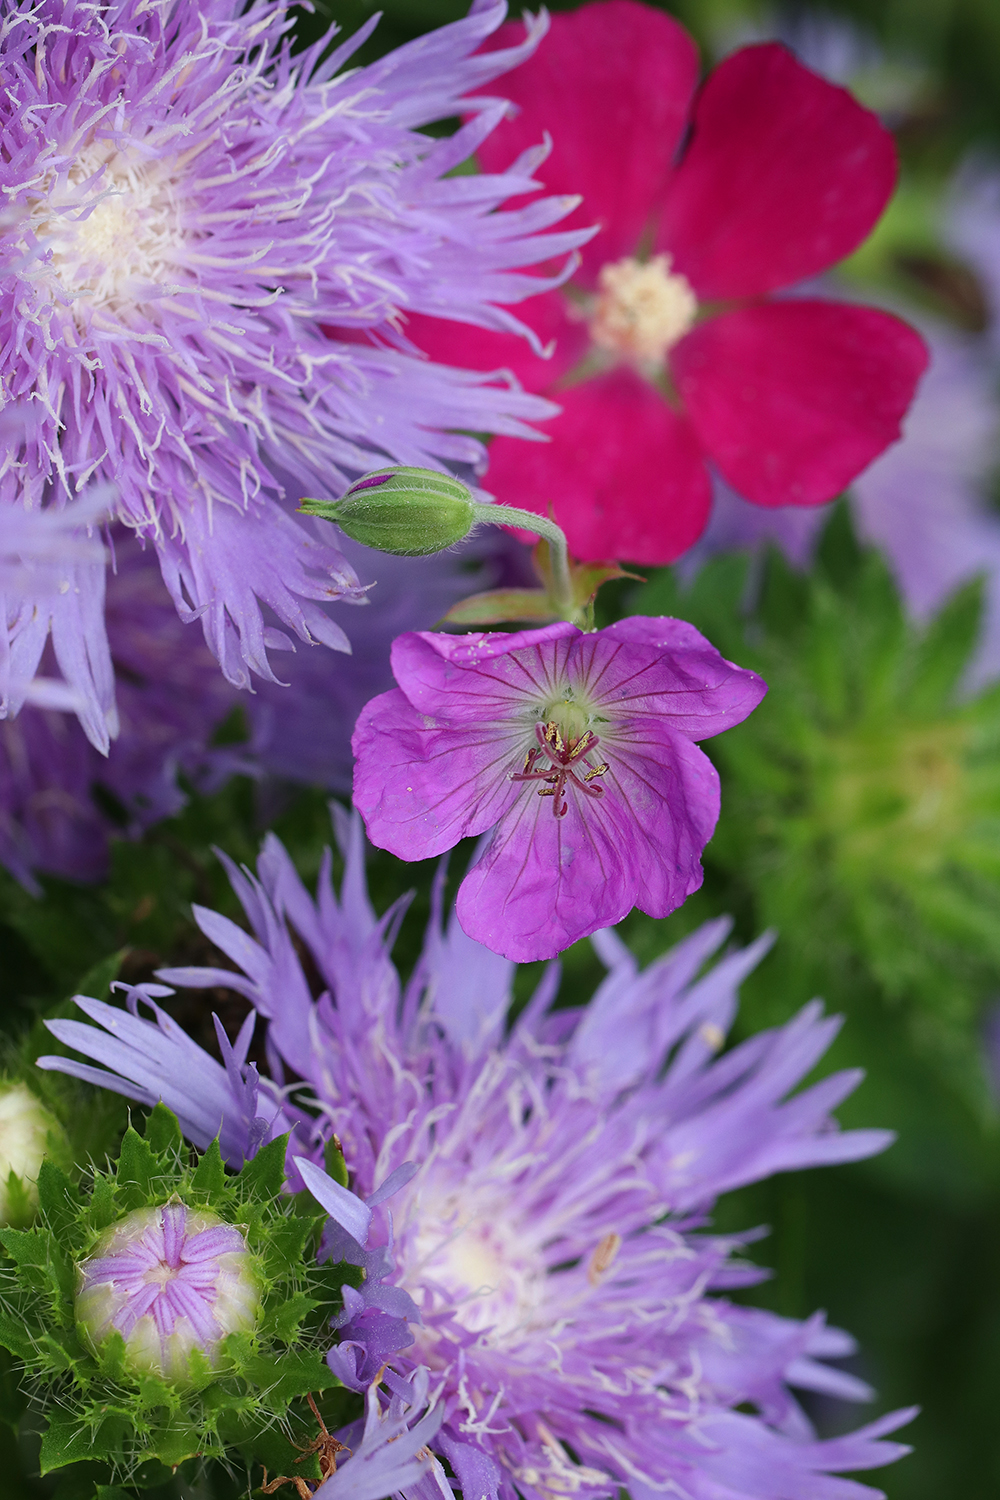 Stoke's aster, poppy mallow, and geranium.